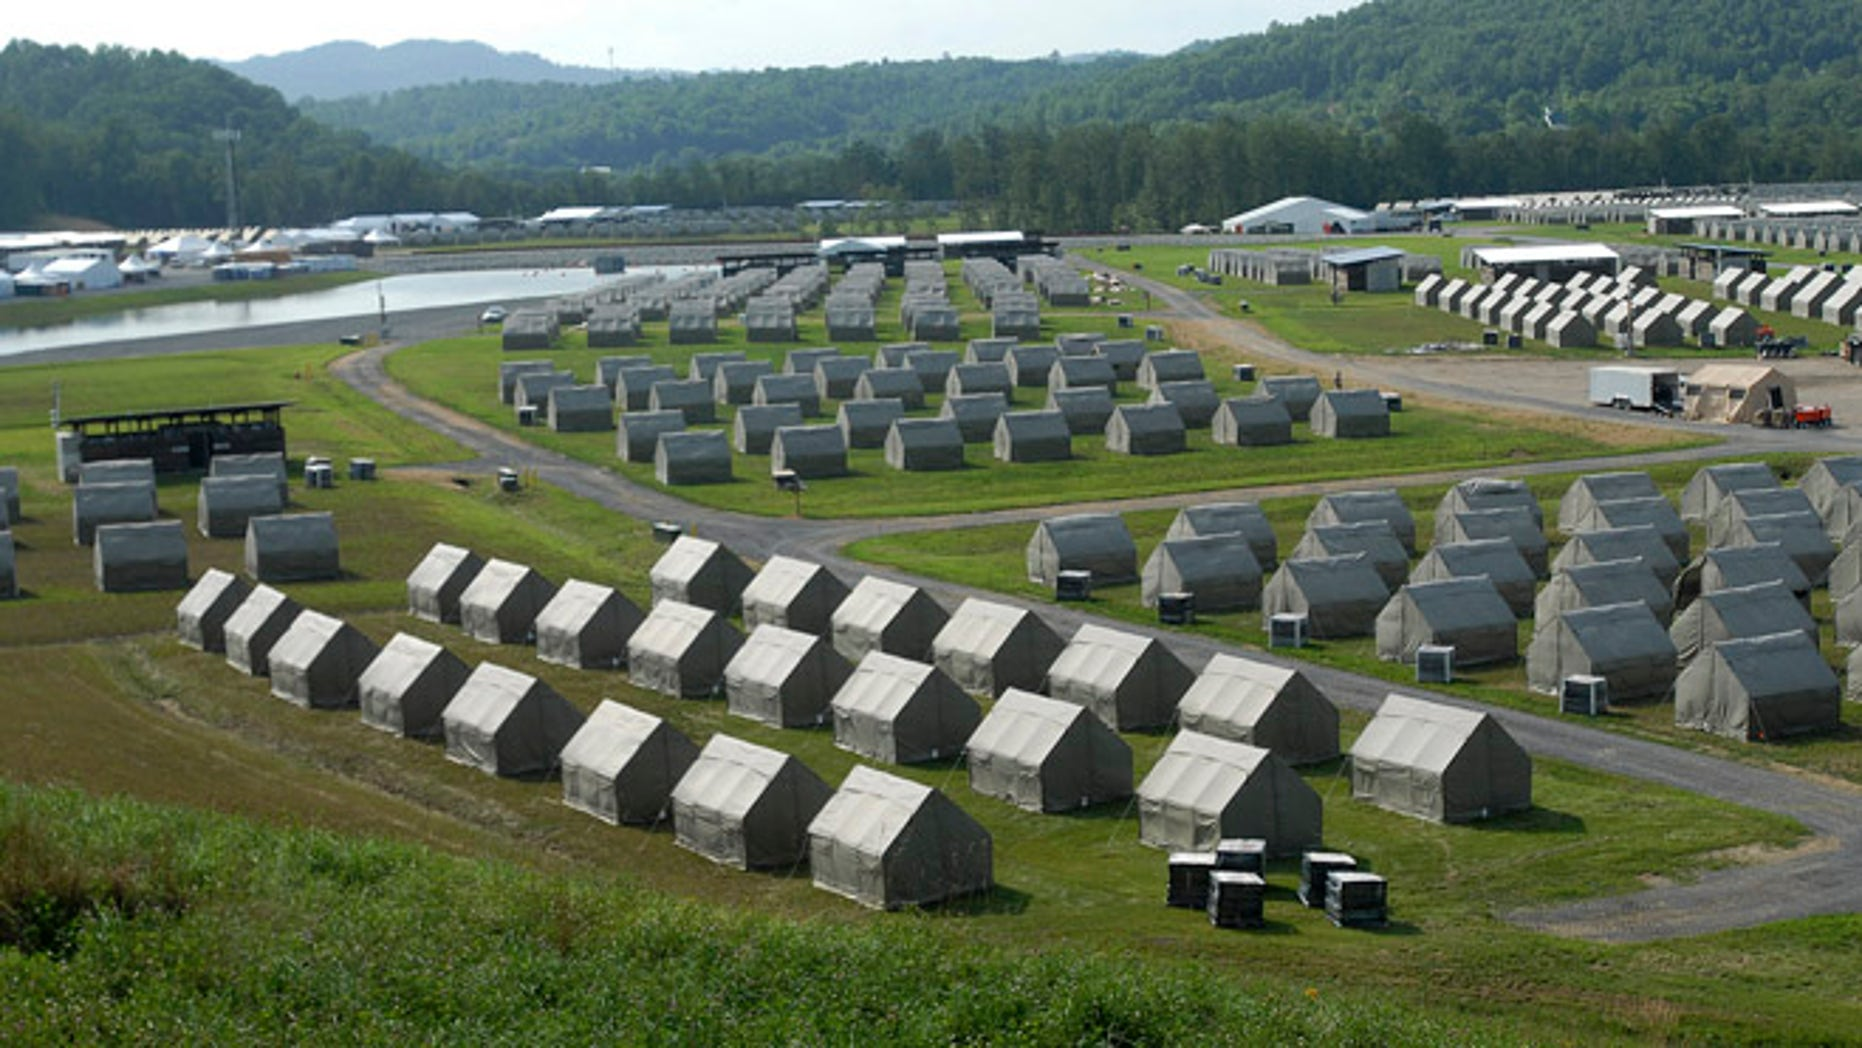 This Monday July 8, 2013 photo shows tents that will house staff members at the Summit Bechtel Family National Scout Reserve in Glen Jean, W.Va. Some 40,000 Scouts, leaders and others will descend on southern West Virginia for the first ever National Scout Jamboree at the site next week.